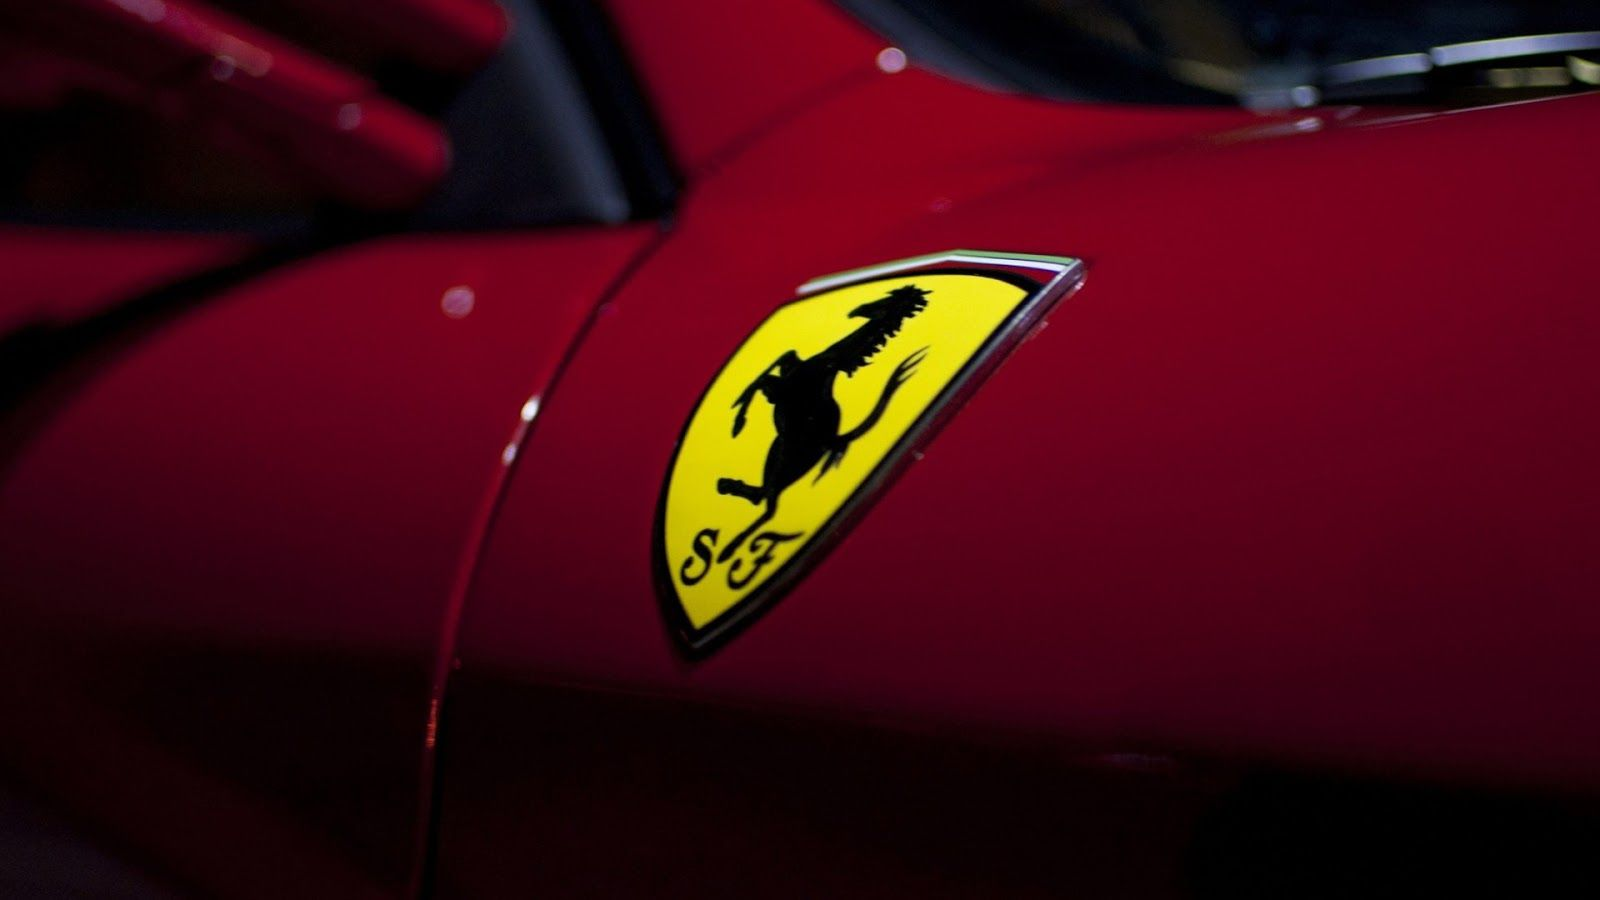 The history of the Prancing Horse